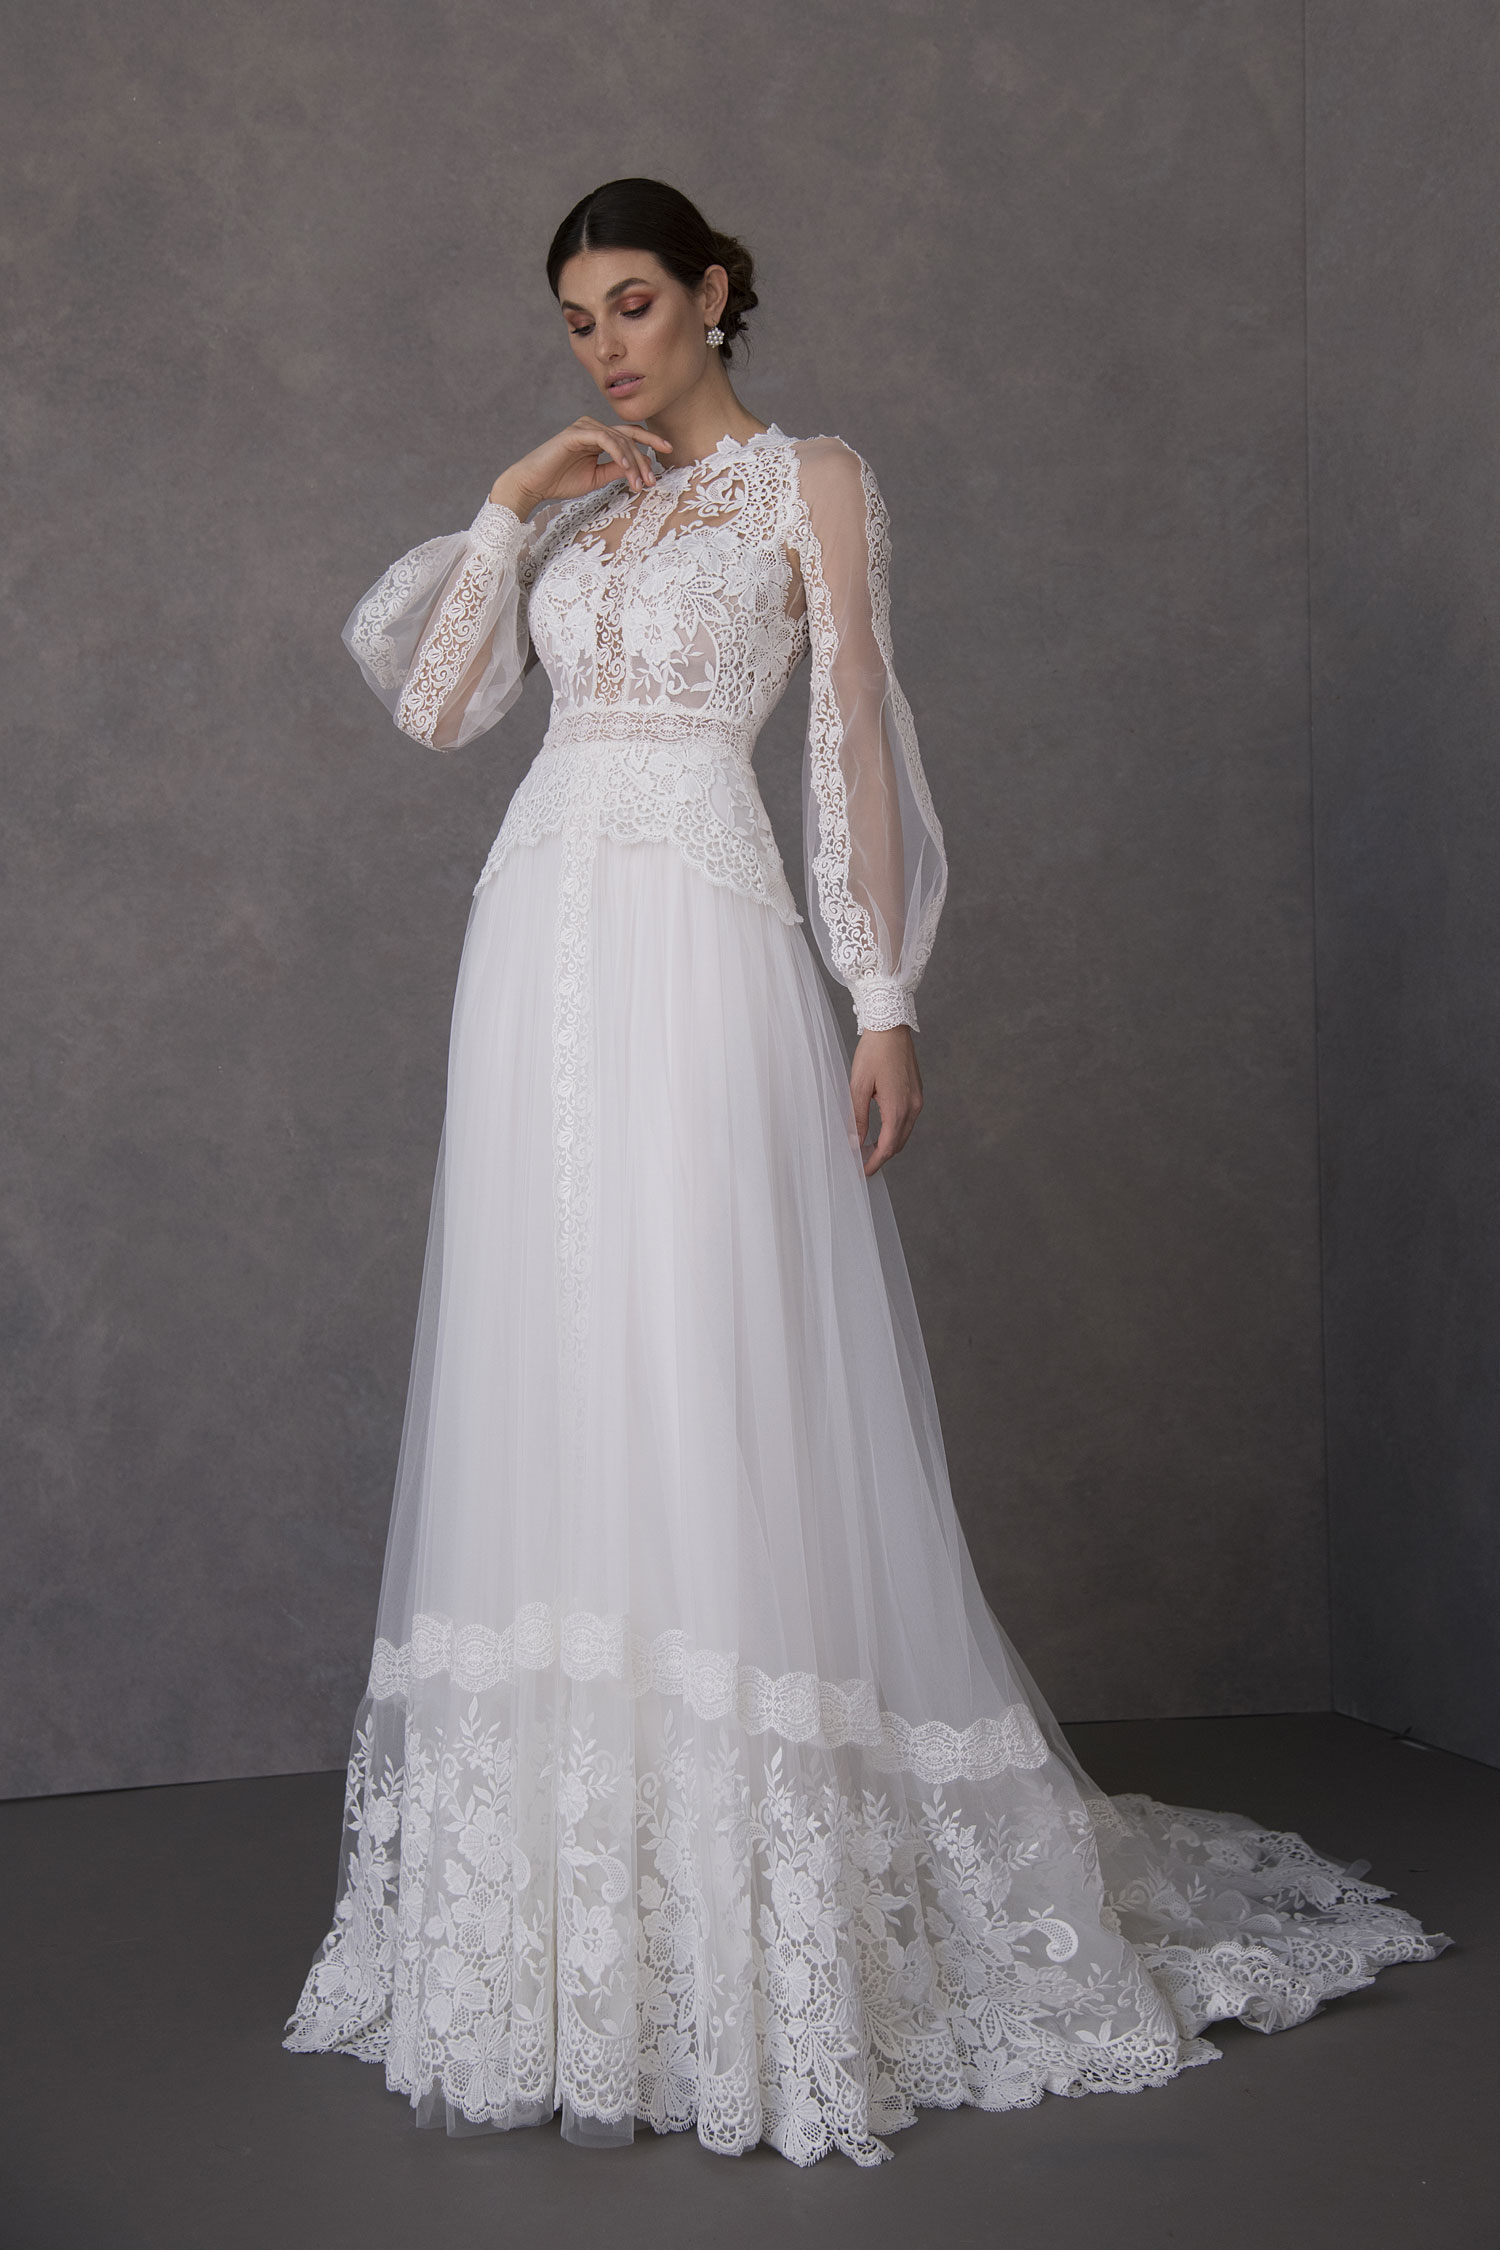 Valentini Spose high neck long sleeve wedding dress lace gown puffy sleeves statement sleeves